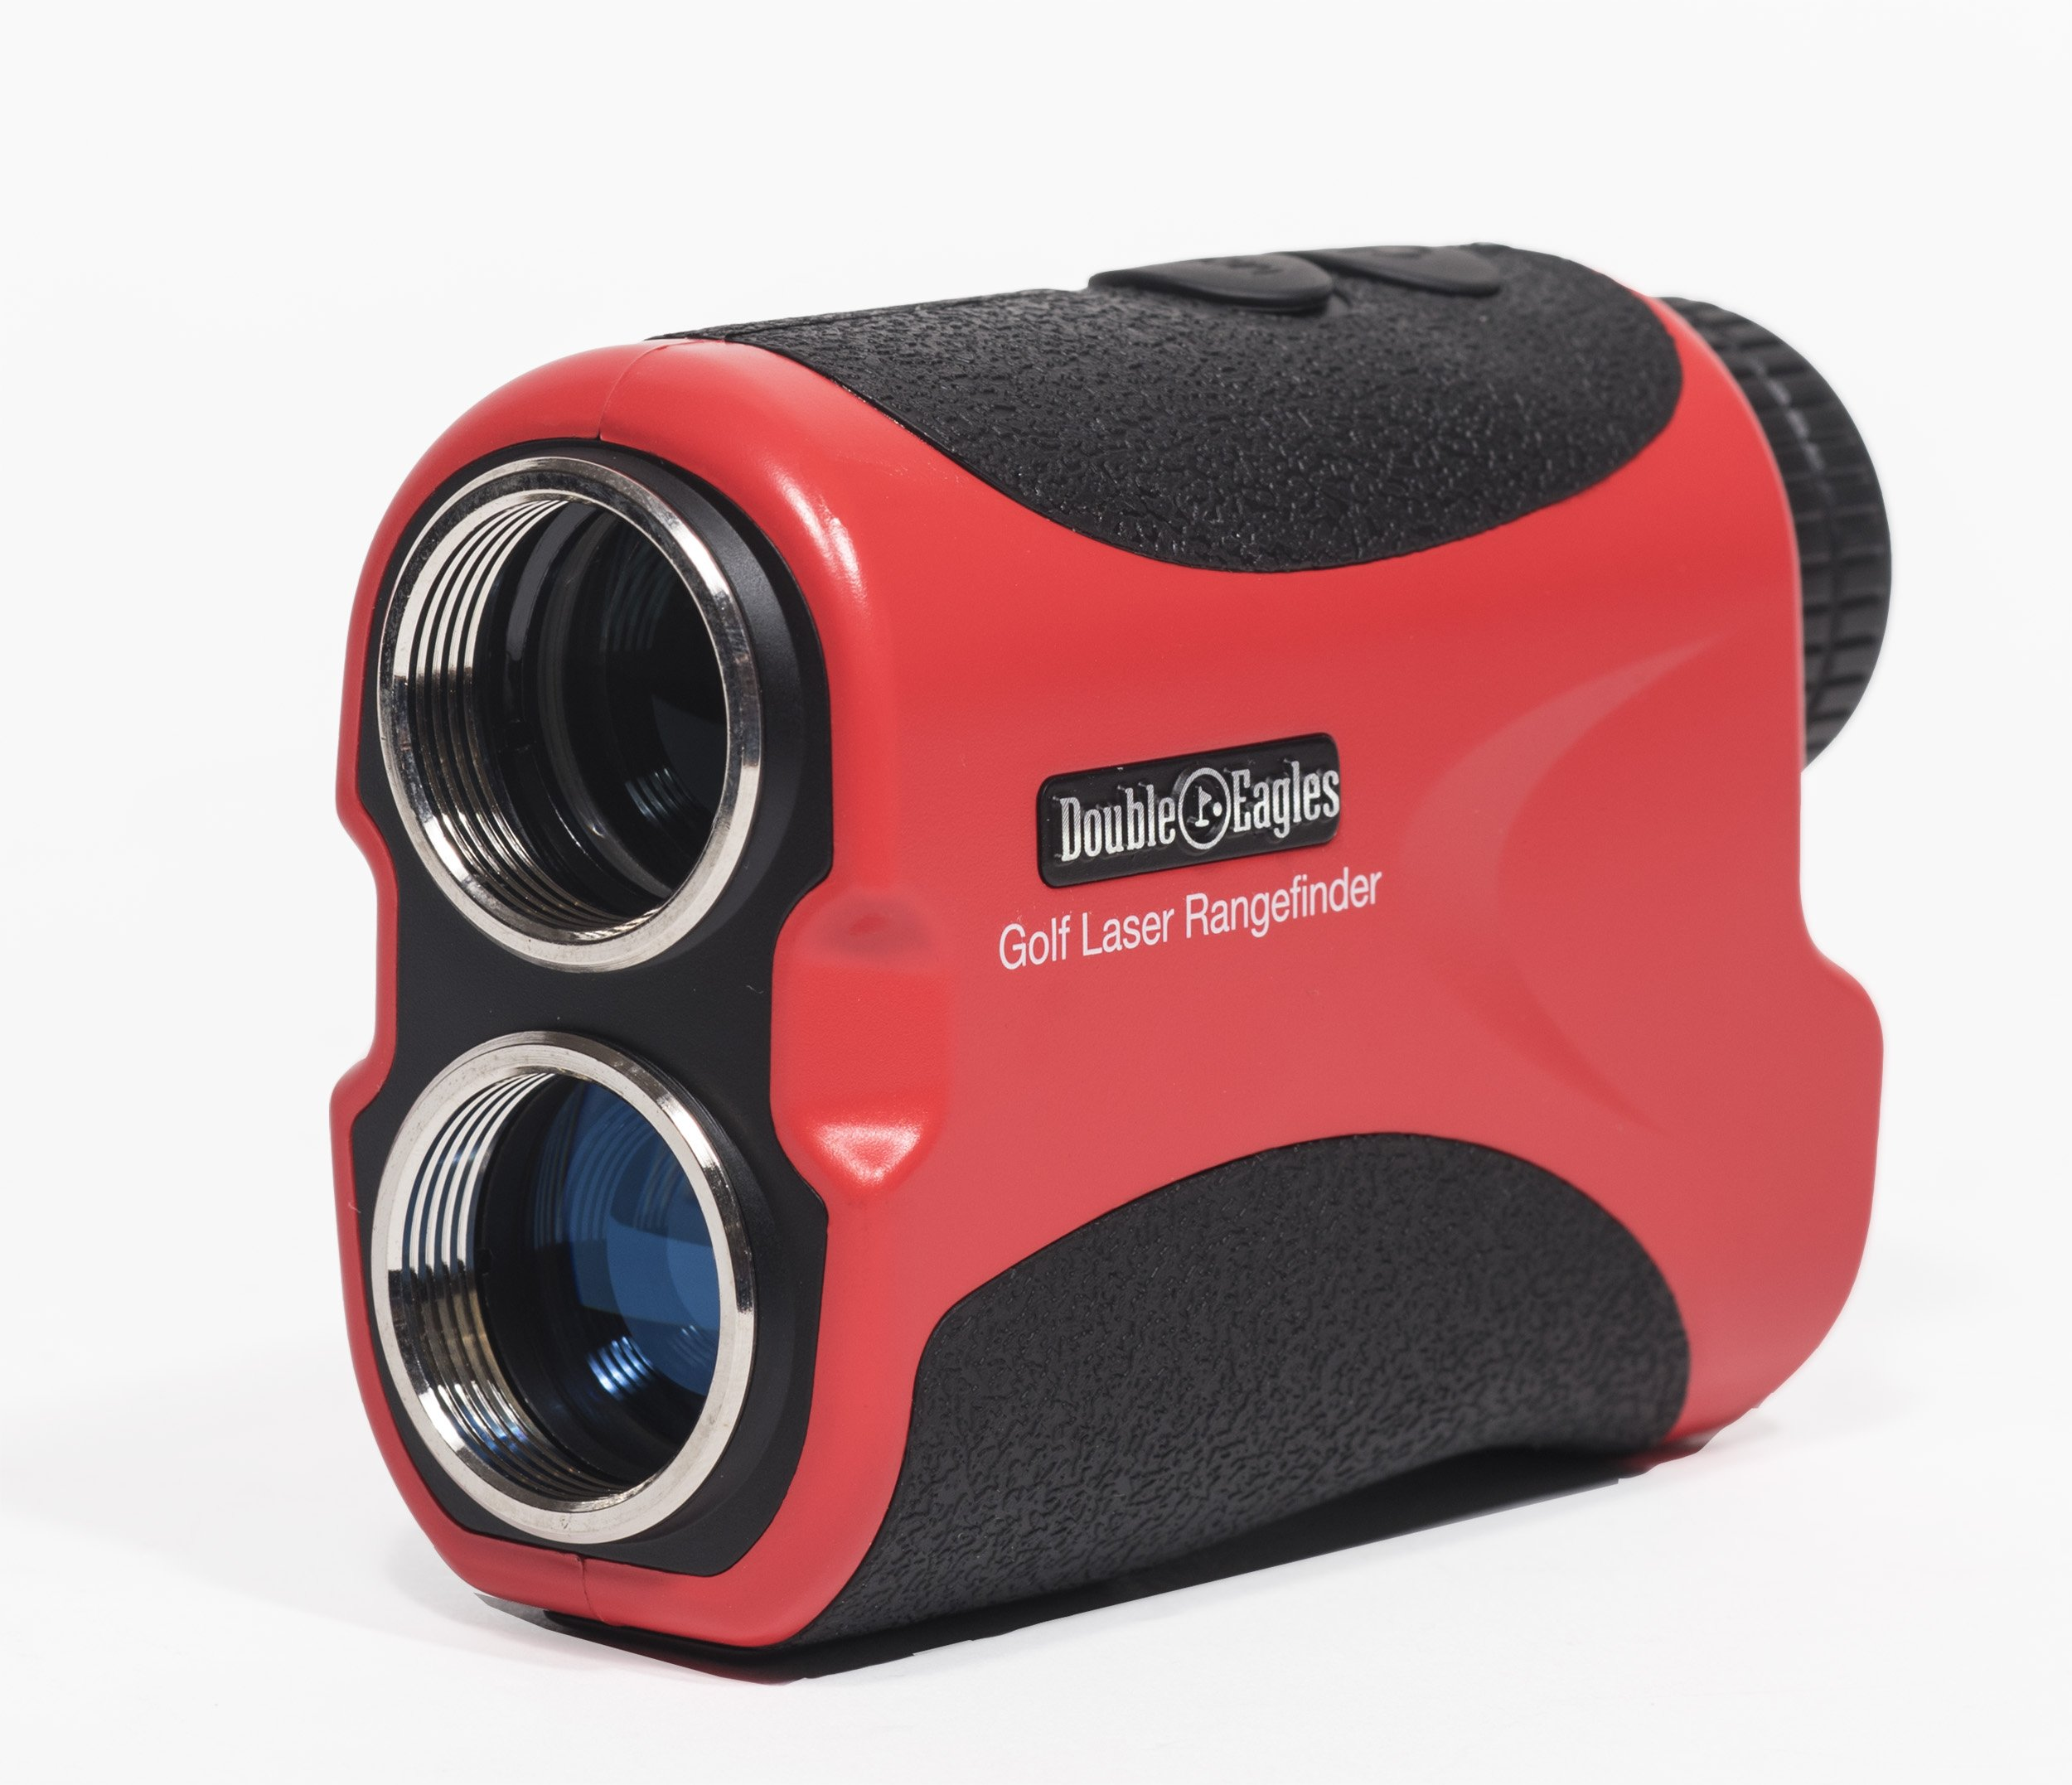 Kozyvacu Double Eagles Depro-600 Golf Laser Range Finder With Pin Sensor, Laser Binoculars, Free Battery, Water Proof